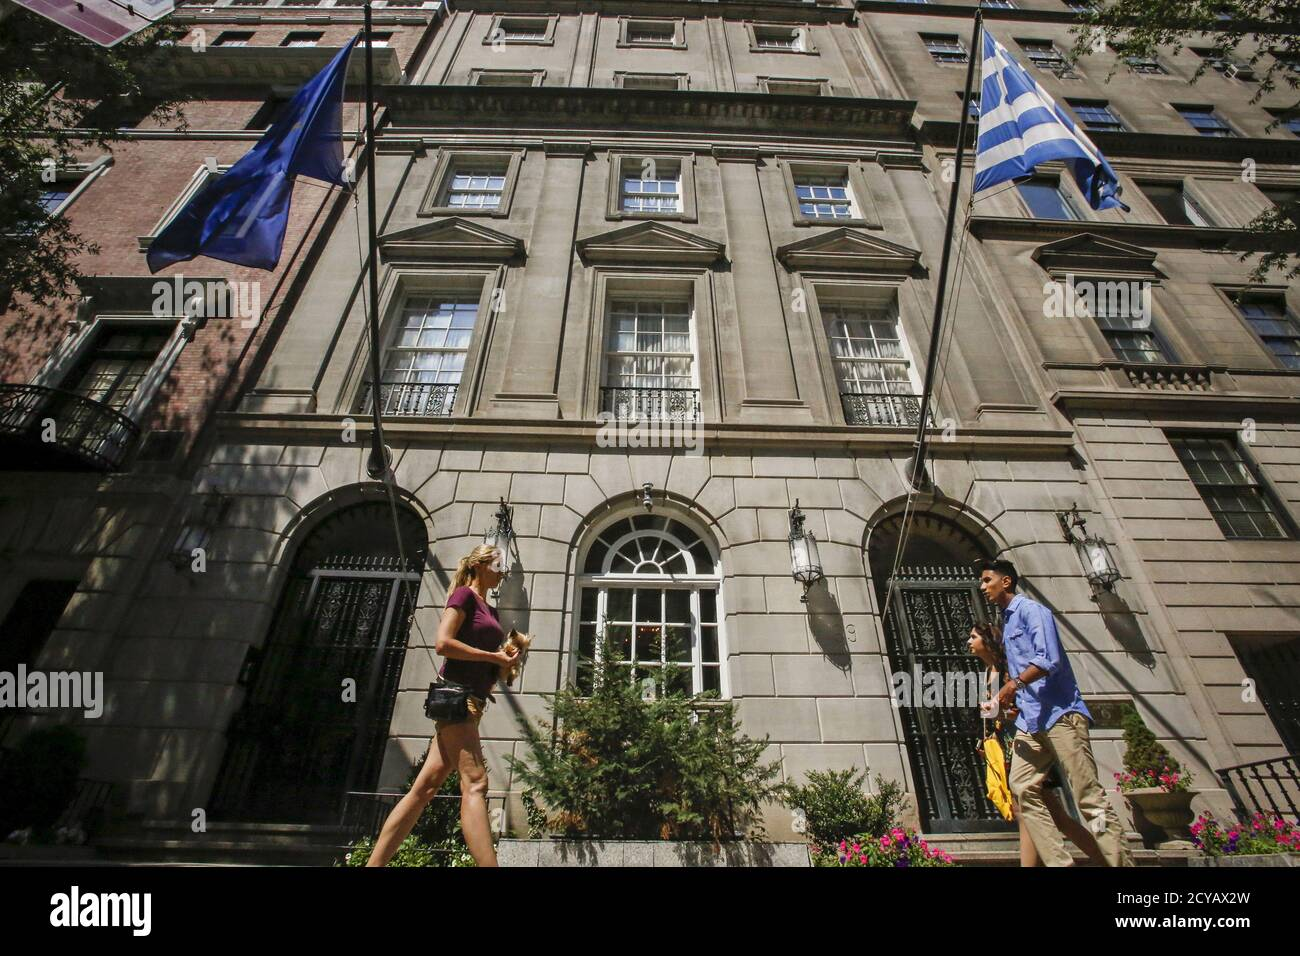 The flags of the European Union and Greece flutter as people walk in front of the Greece consulate in New York June 30, 2015. REUTERS/Eduardo Munoz Stock Photo